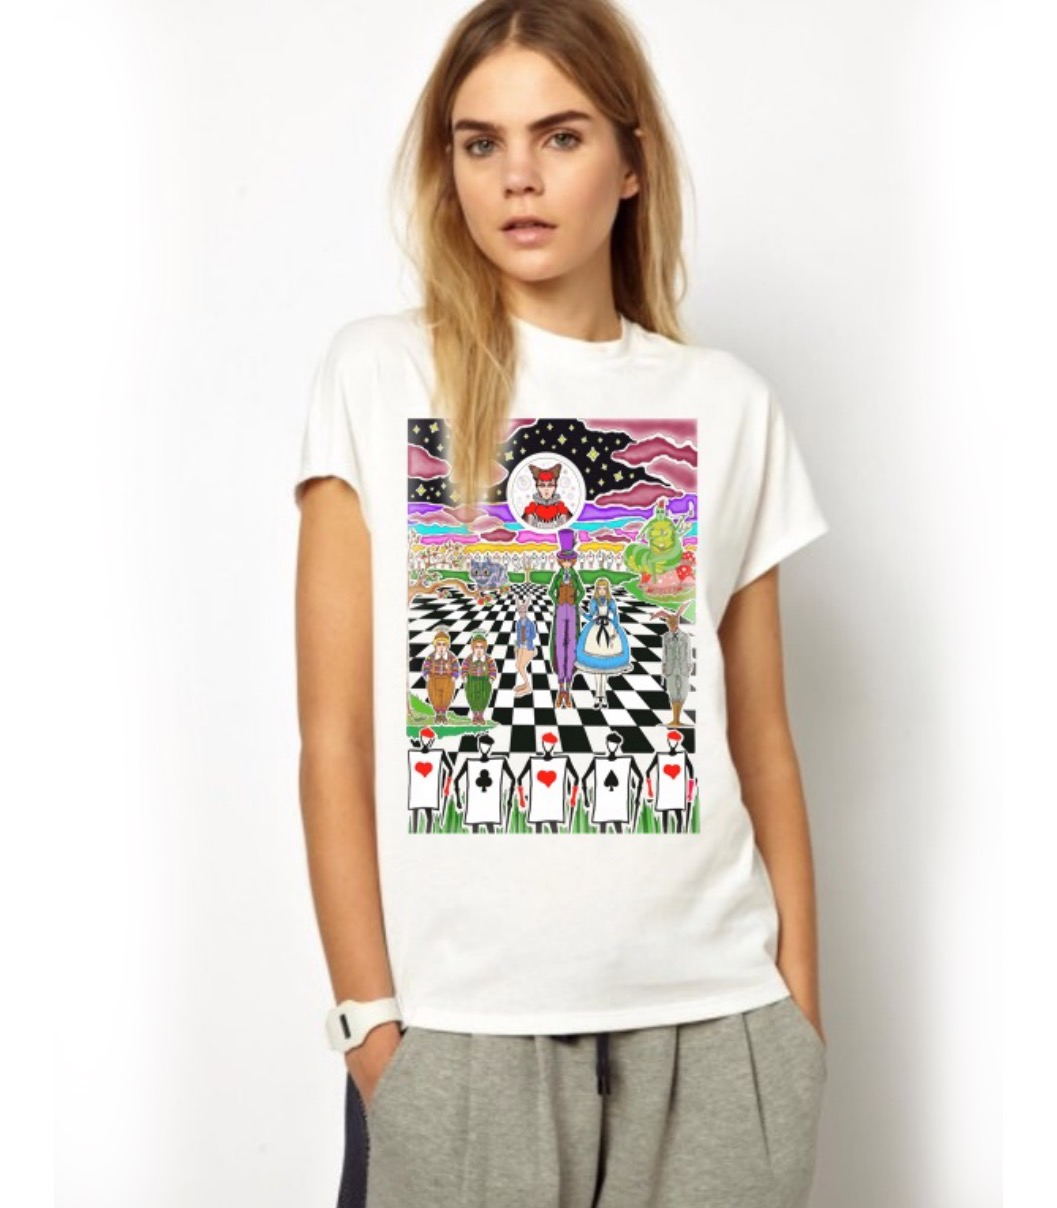 15-Off-White-Women-s-Black-Embroidered-T-Shirt-1 copy 25.jpg